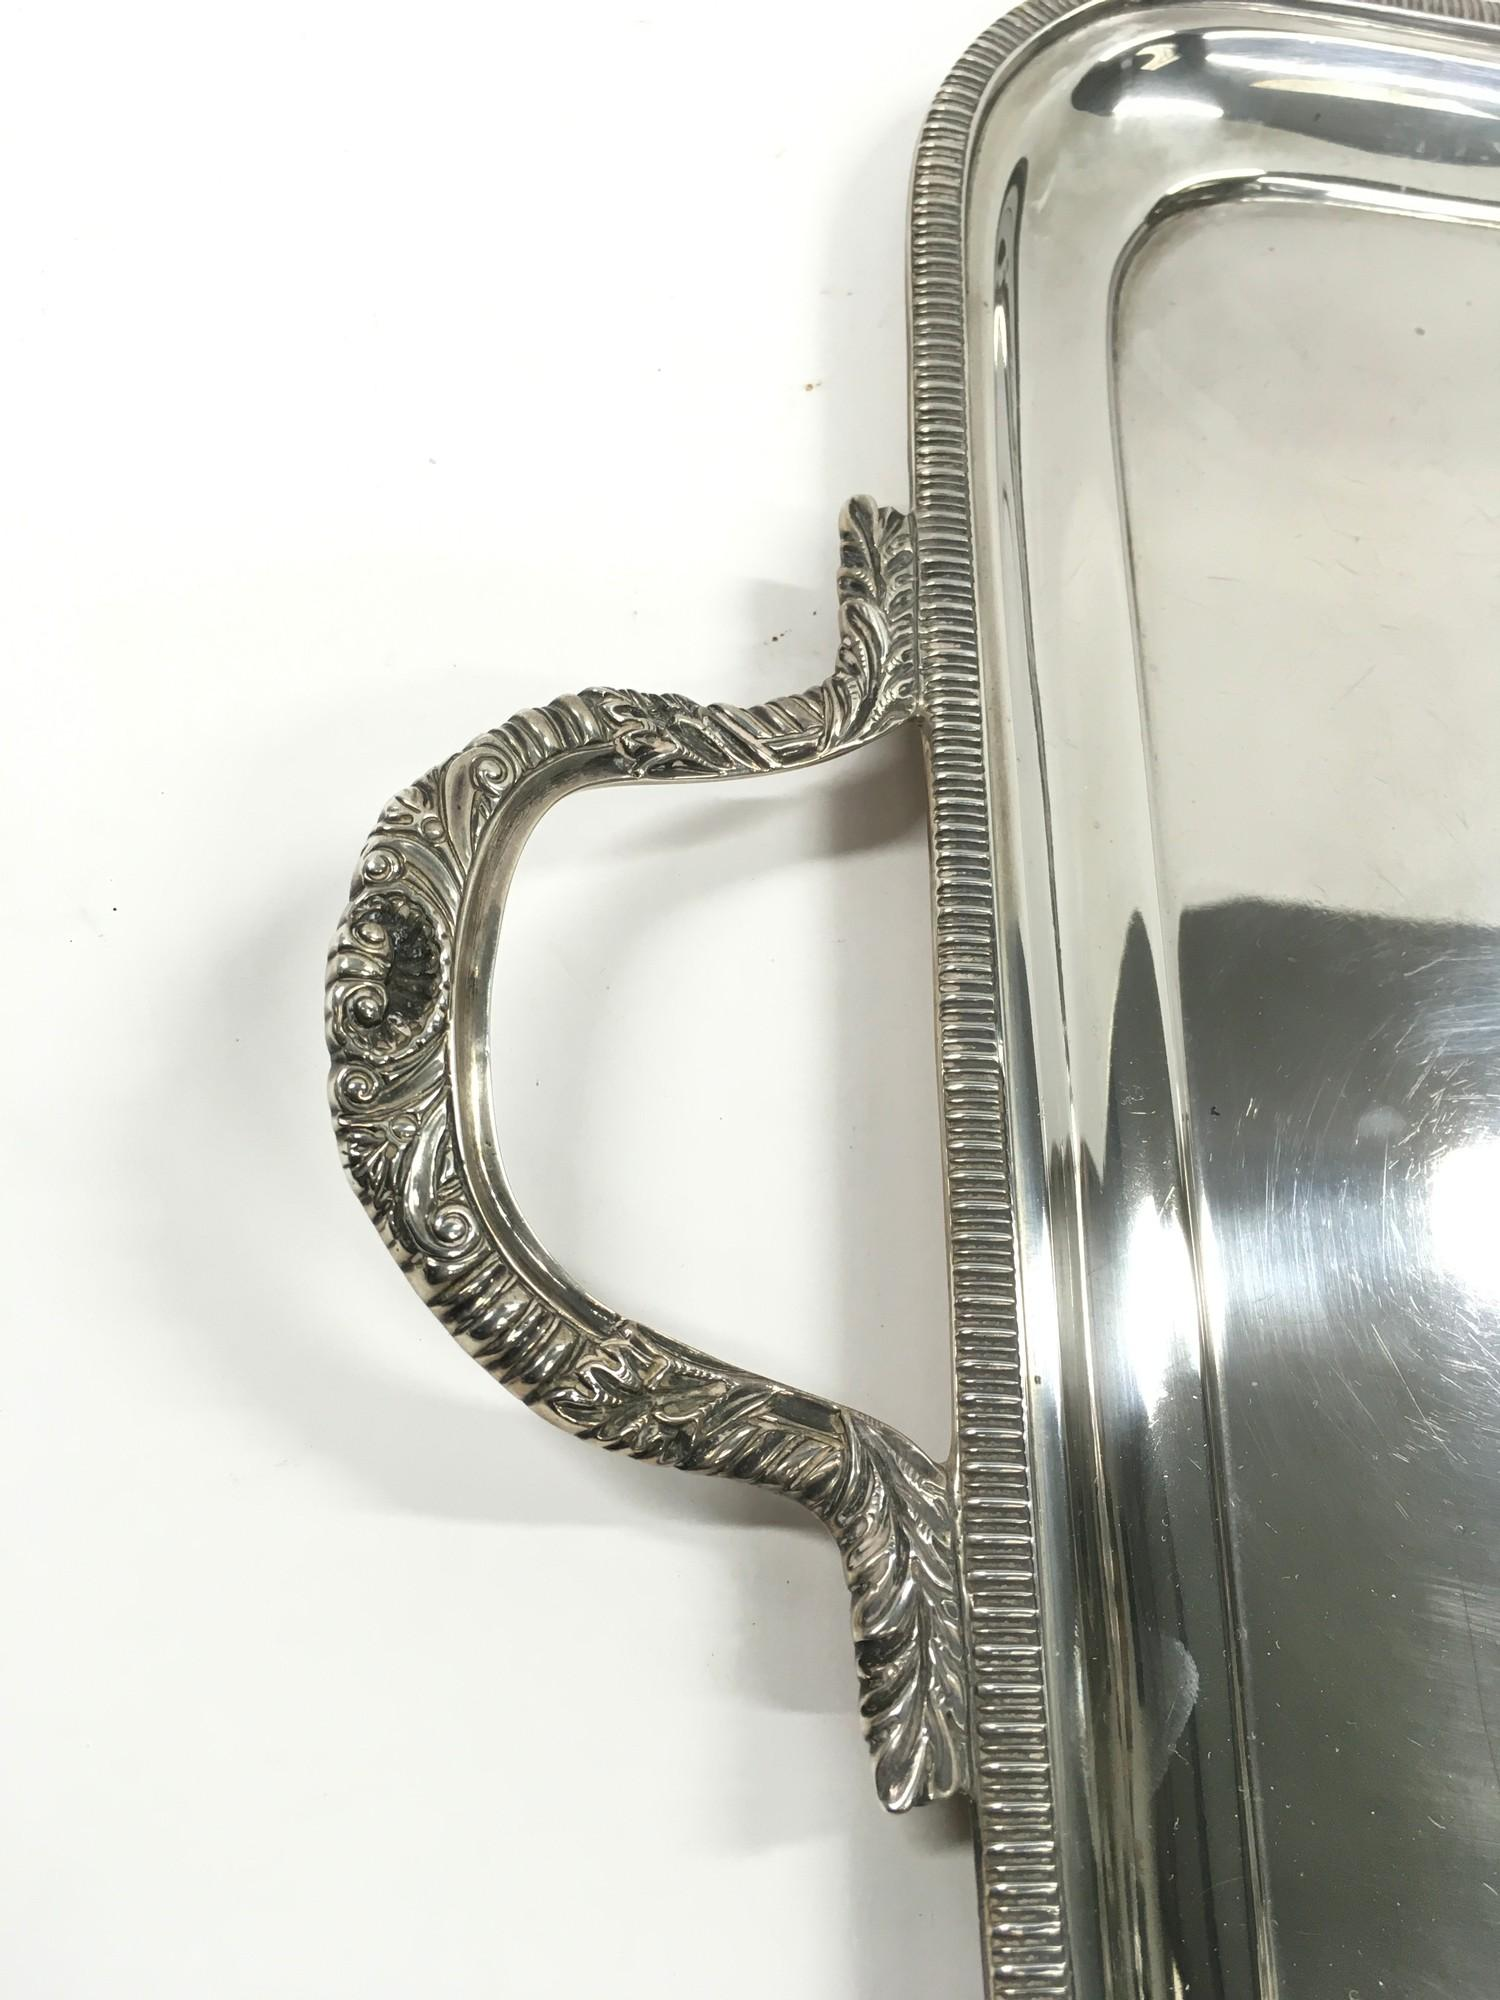 Large two handed Silver tray of approximately 2 kilos in weight. - Image 3 of 5